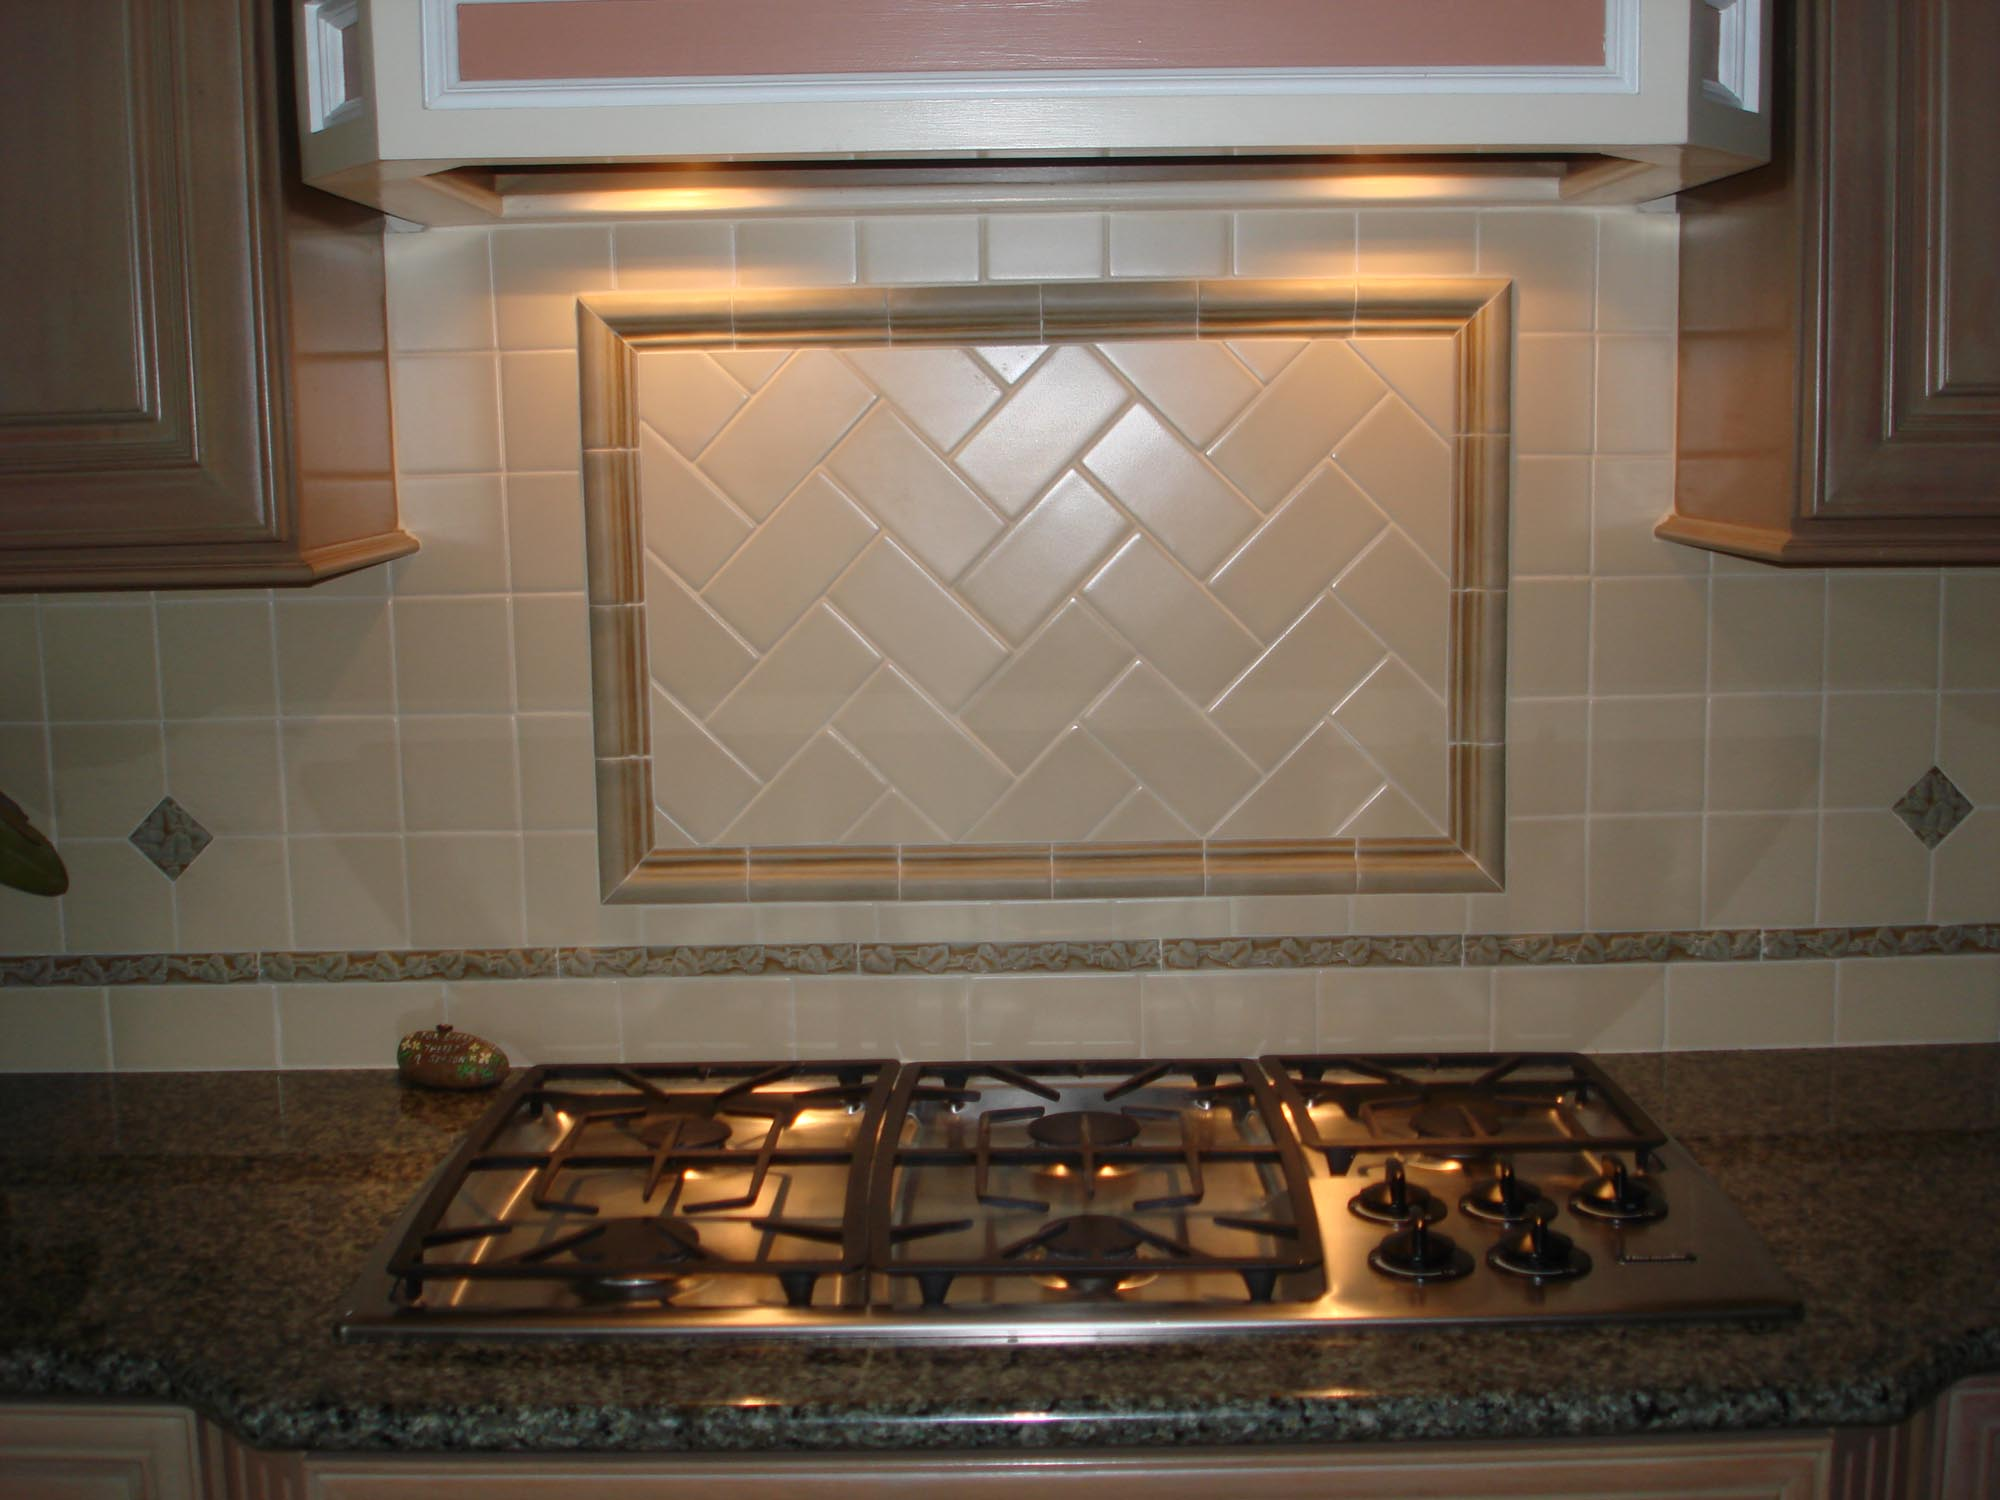 Handmade Ceramic Kitchen Backsplash New Jersey Custom Tile